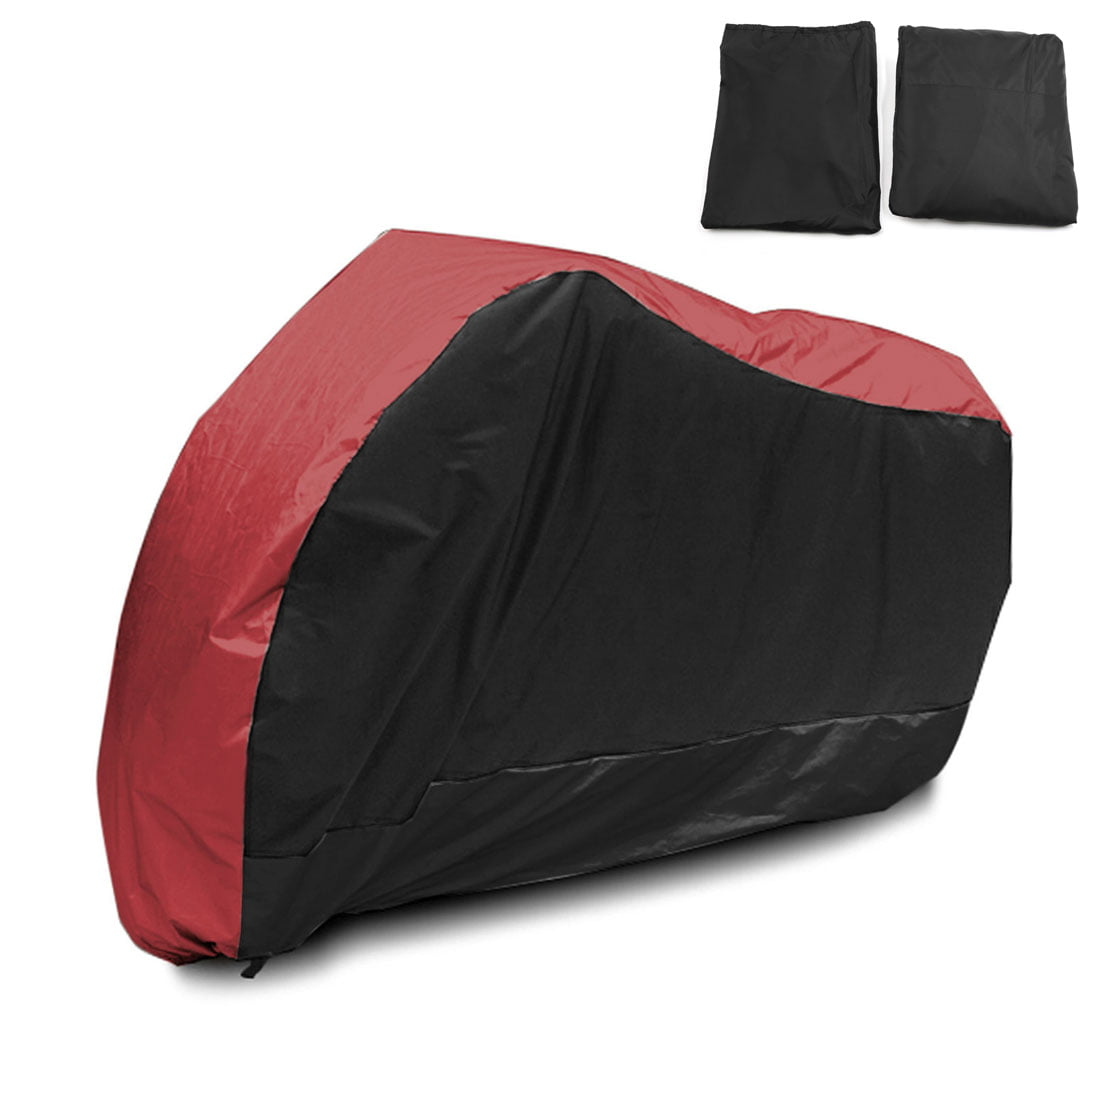 XXL Black+Red Motorcycle Cover For Harley Davidson Dyna Glide Fat Bob Street Bob